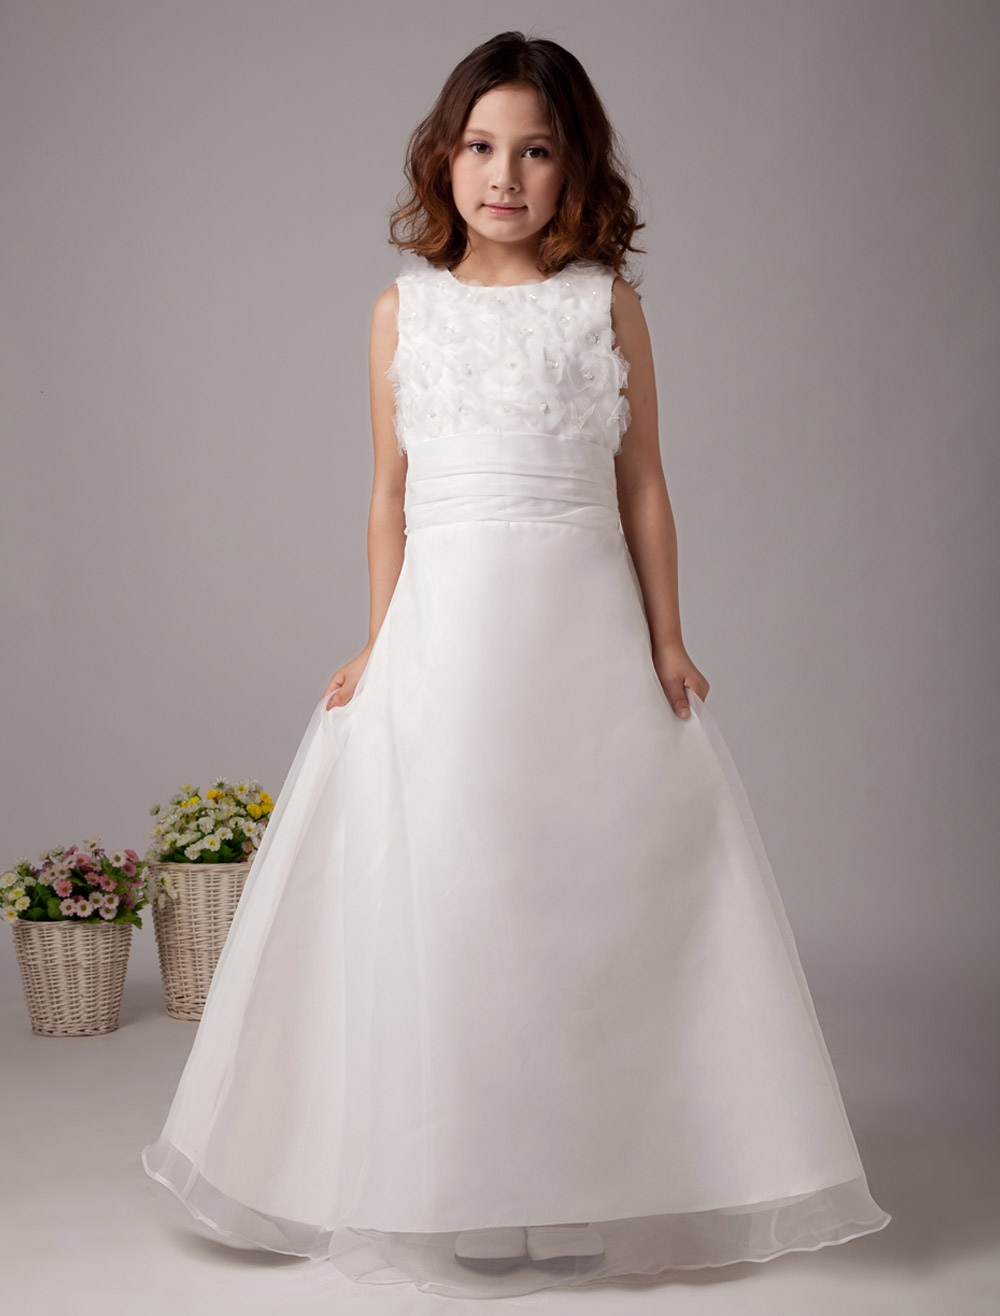 Cute White Sleeveless Embroidery Satin Flower Girl Dress